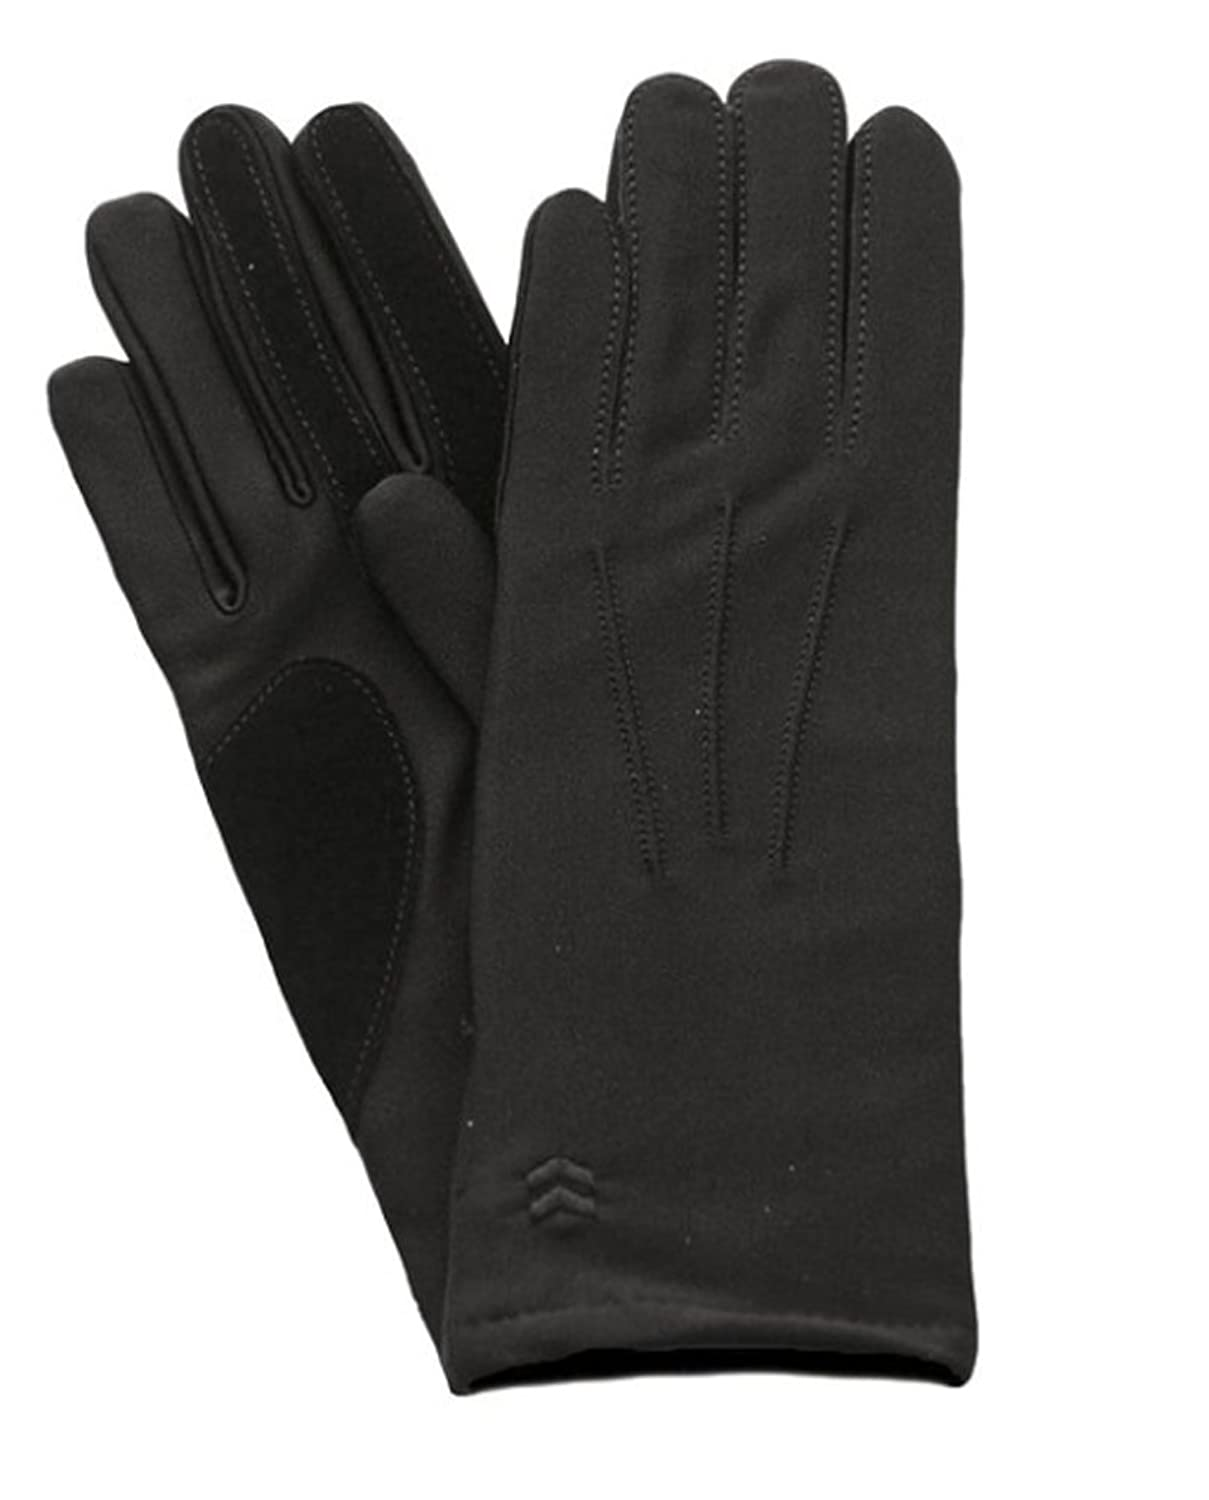 Womens petite leather gloves - Isotoner Womens Lined Gloves One Size